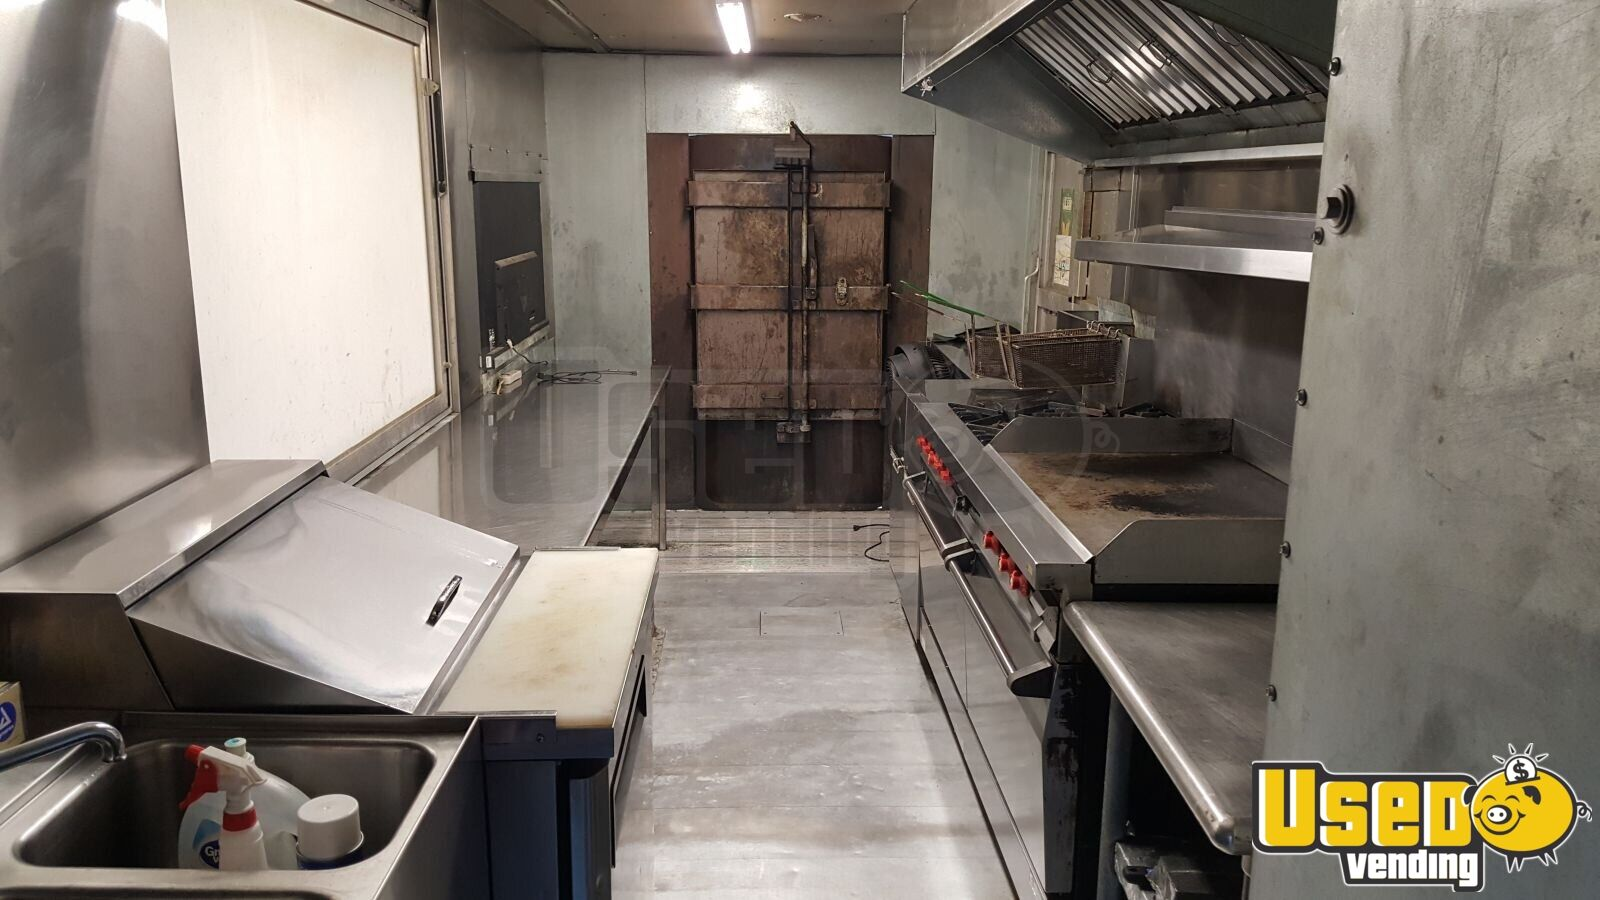 2005 Step Van Barbecue Food Truck Barbecue Food Truck Propane Tank New York Diesel Engine for Sale - 8